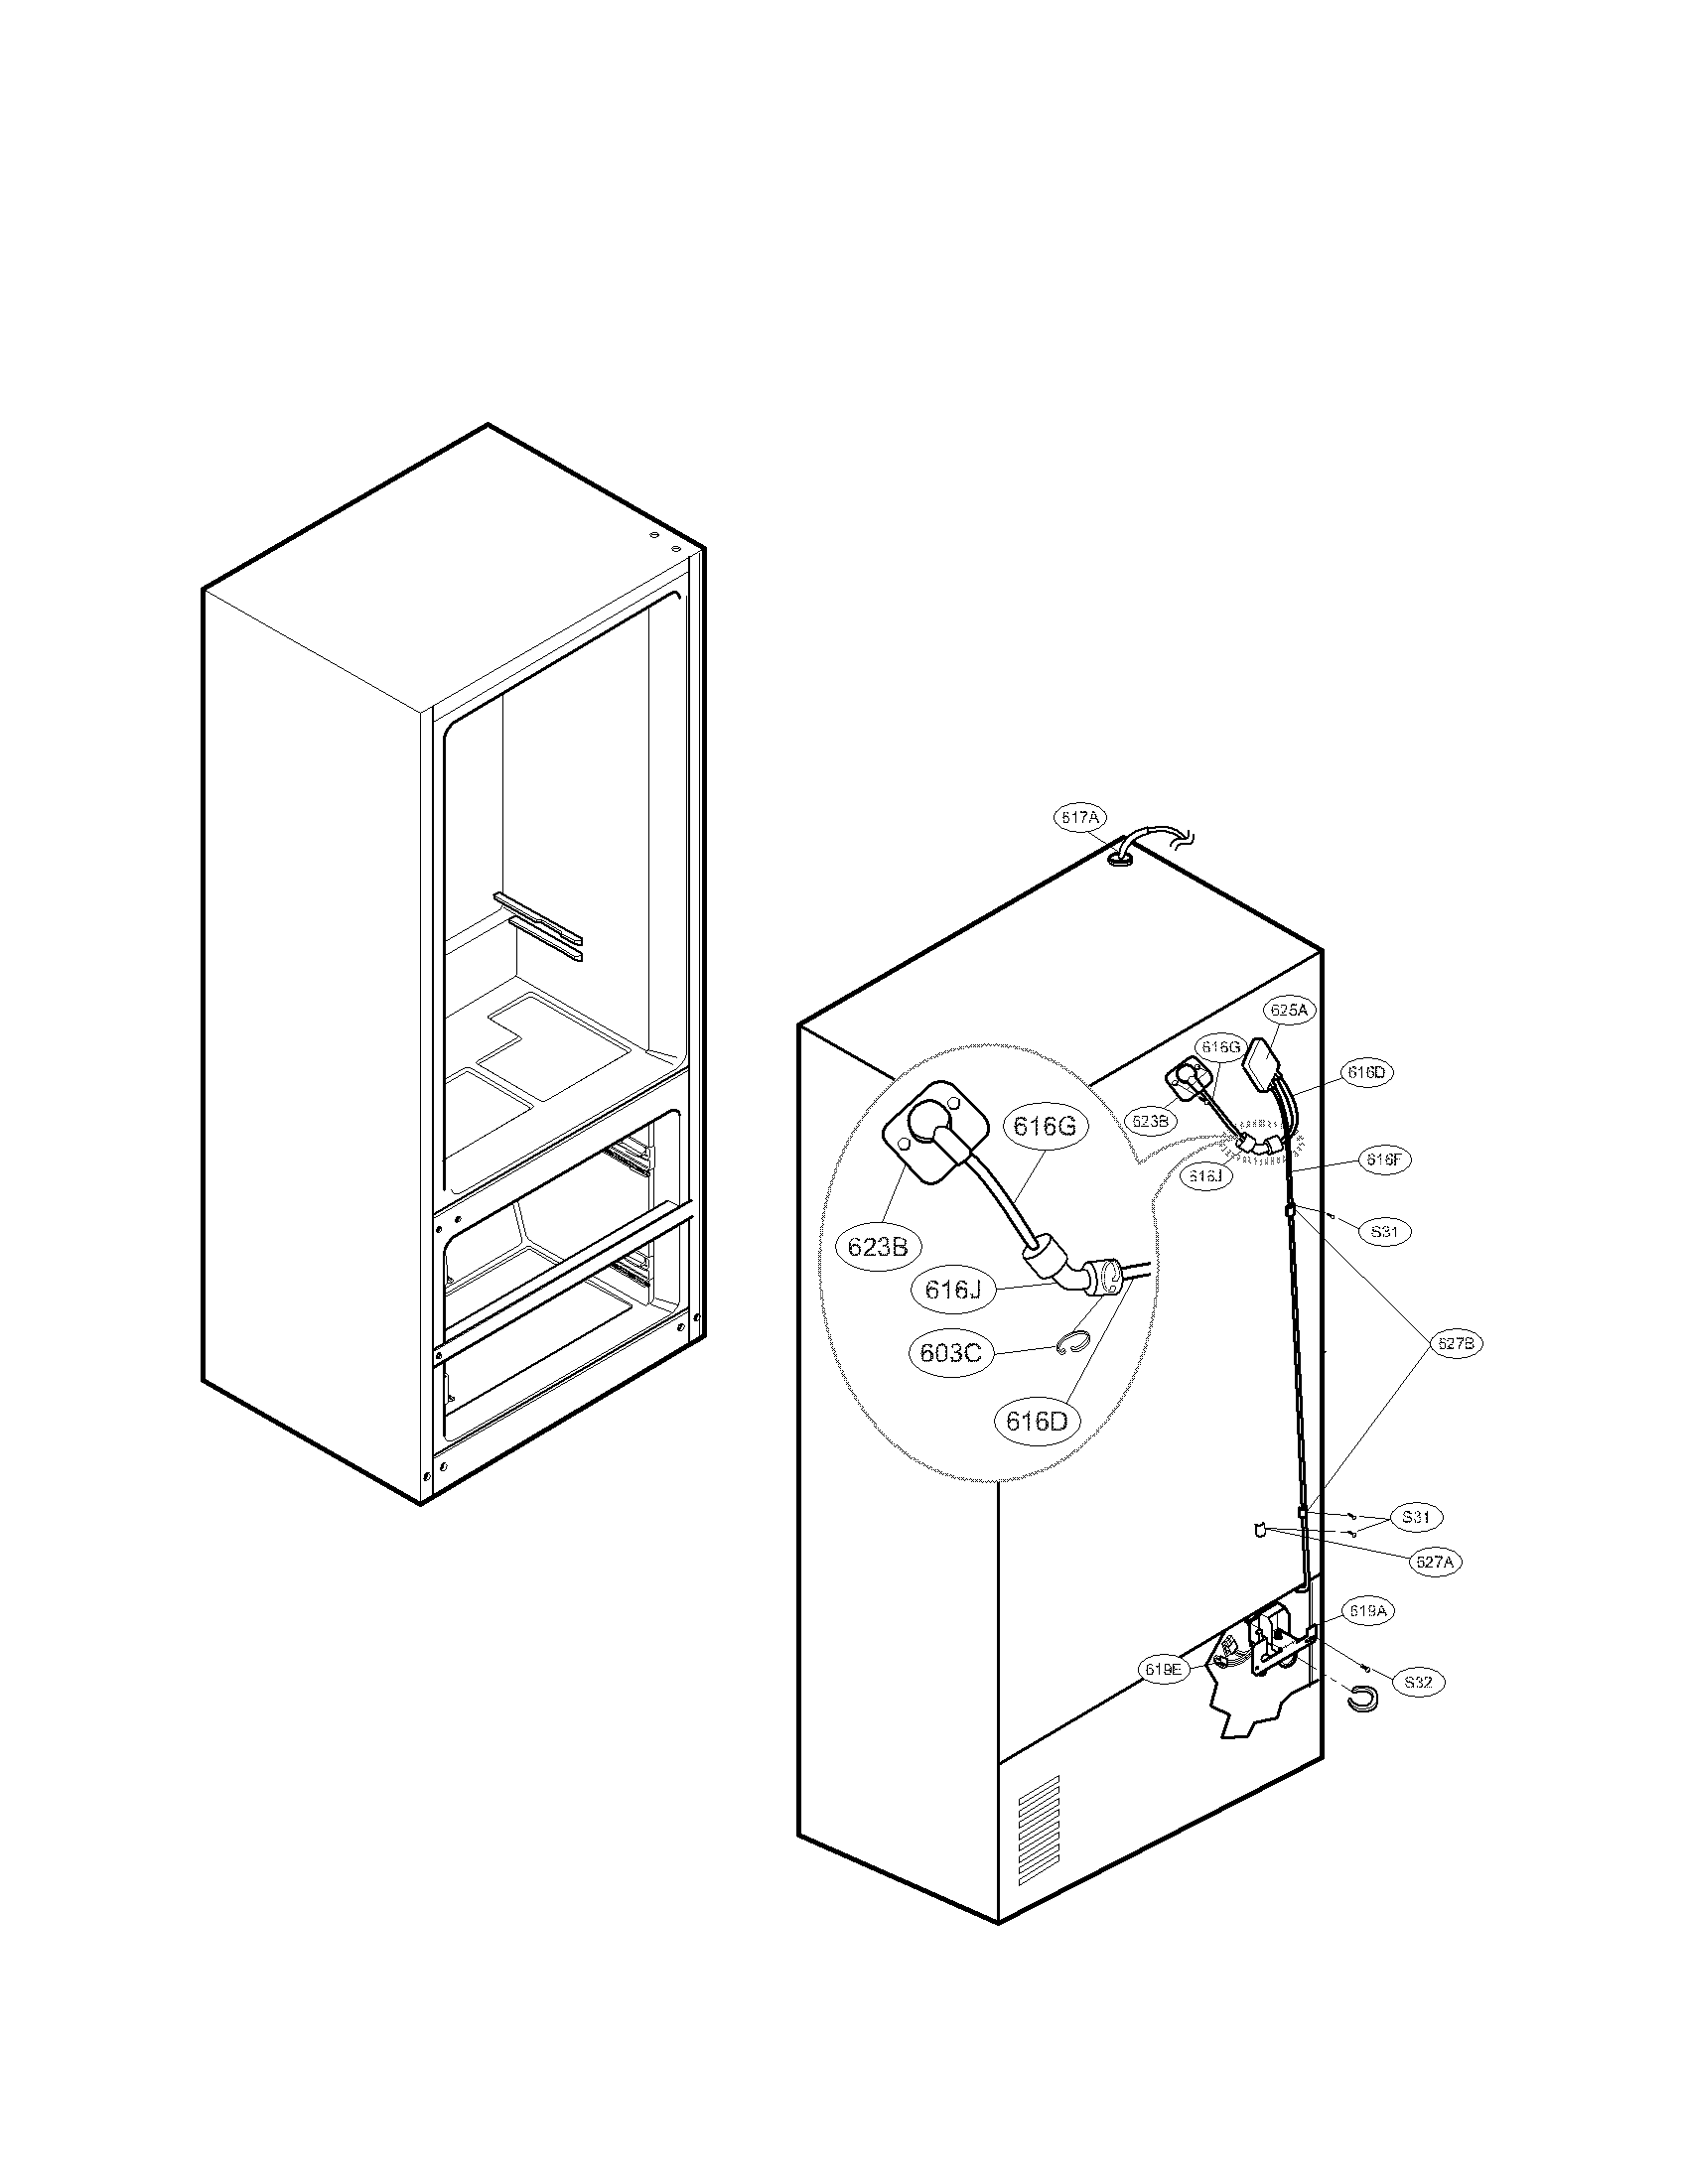 Lg model LMX25964ST/00 bottom-mount refrigerator genuine parts